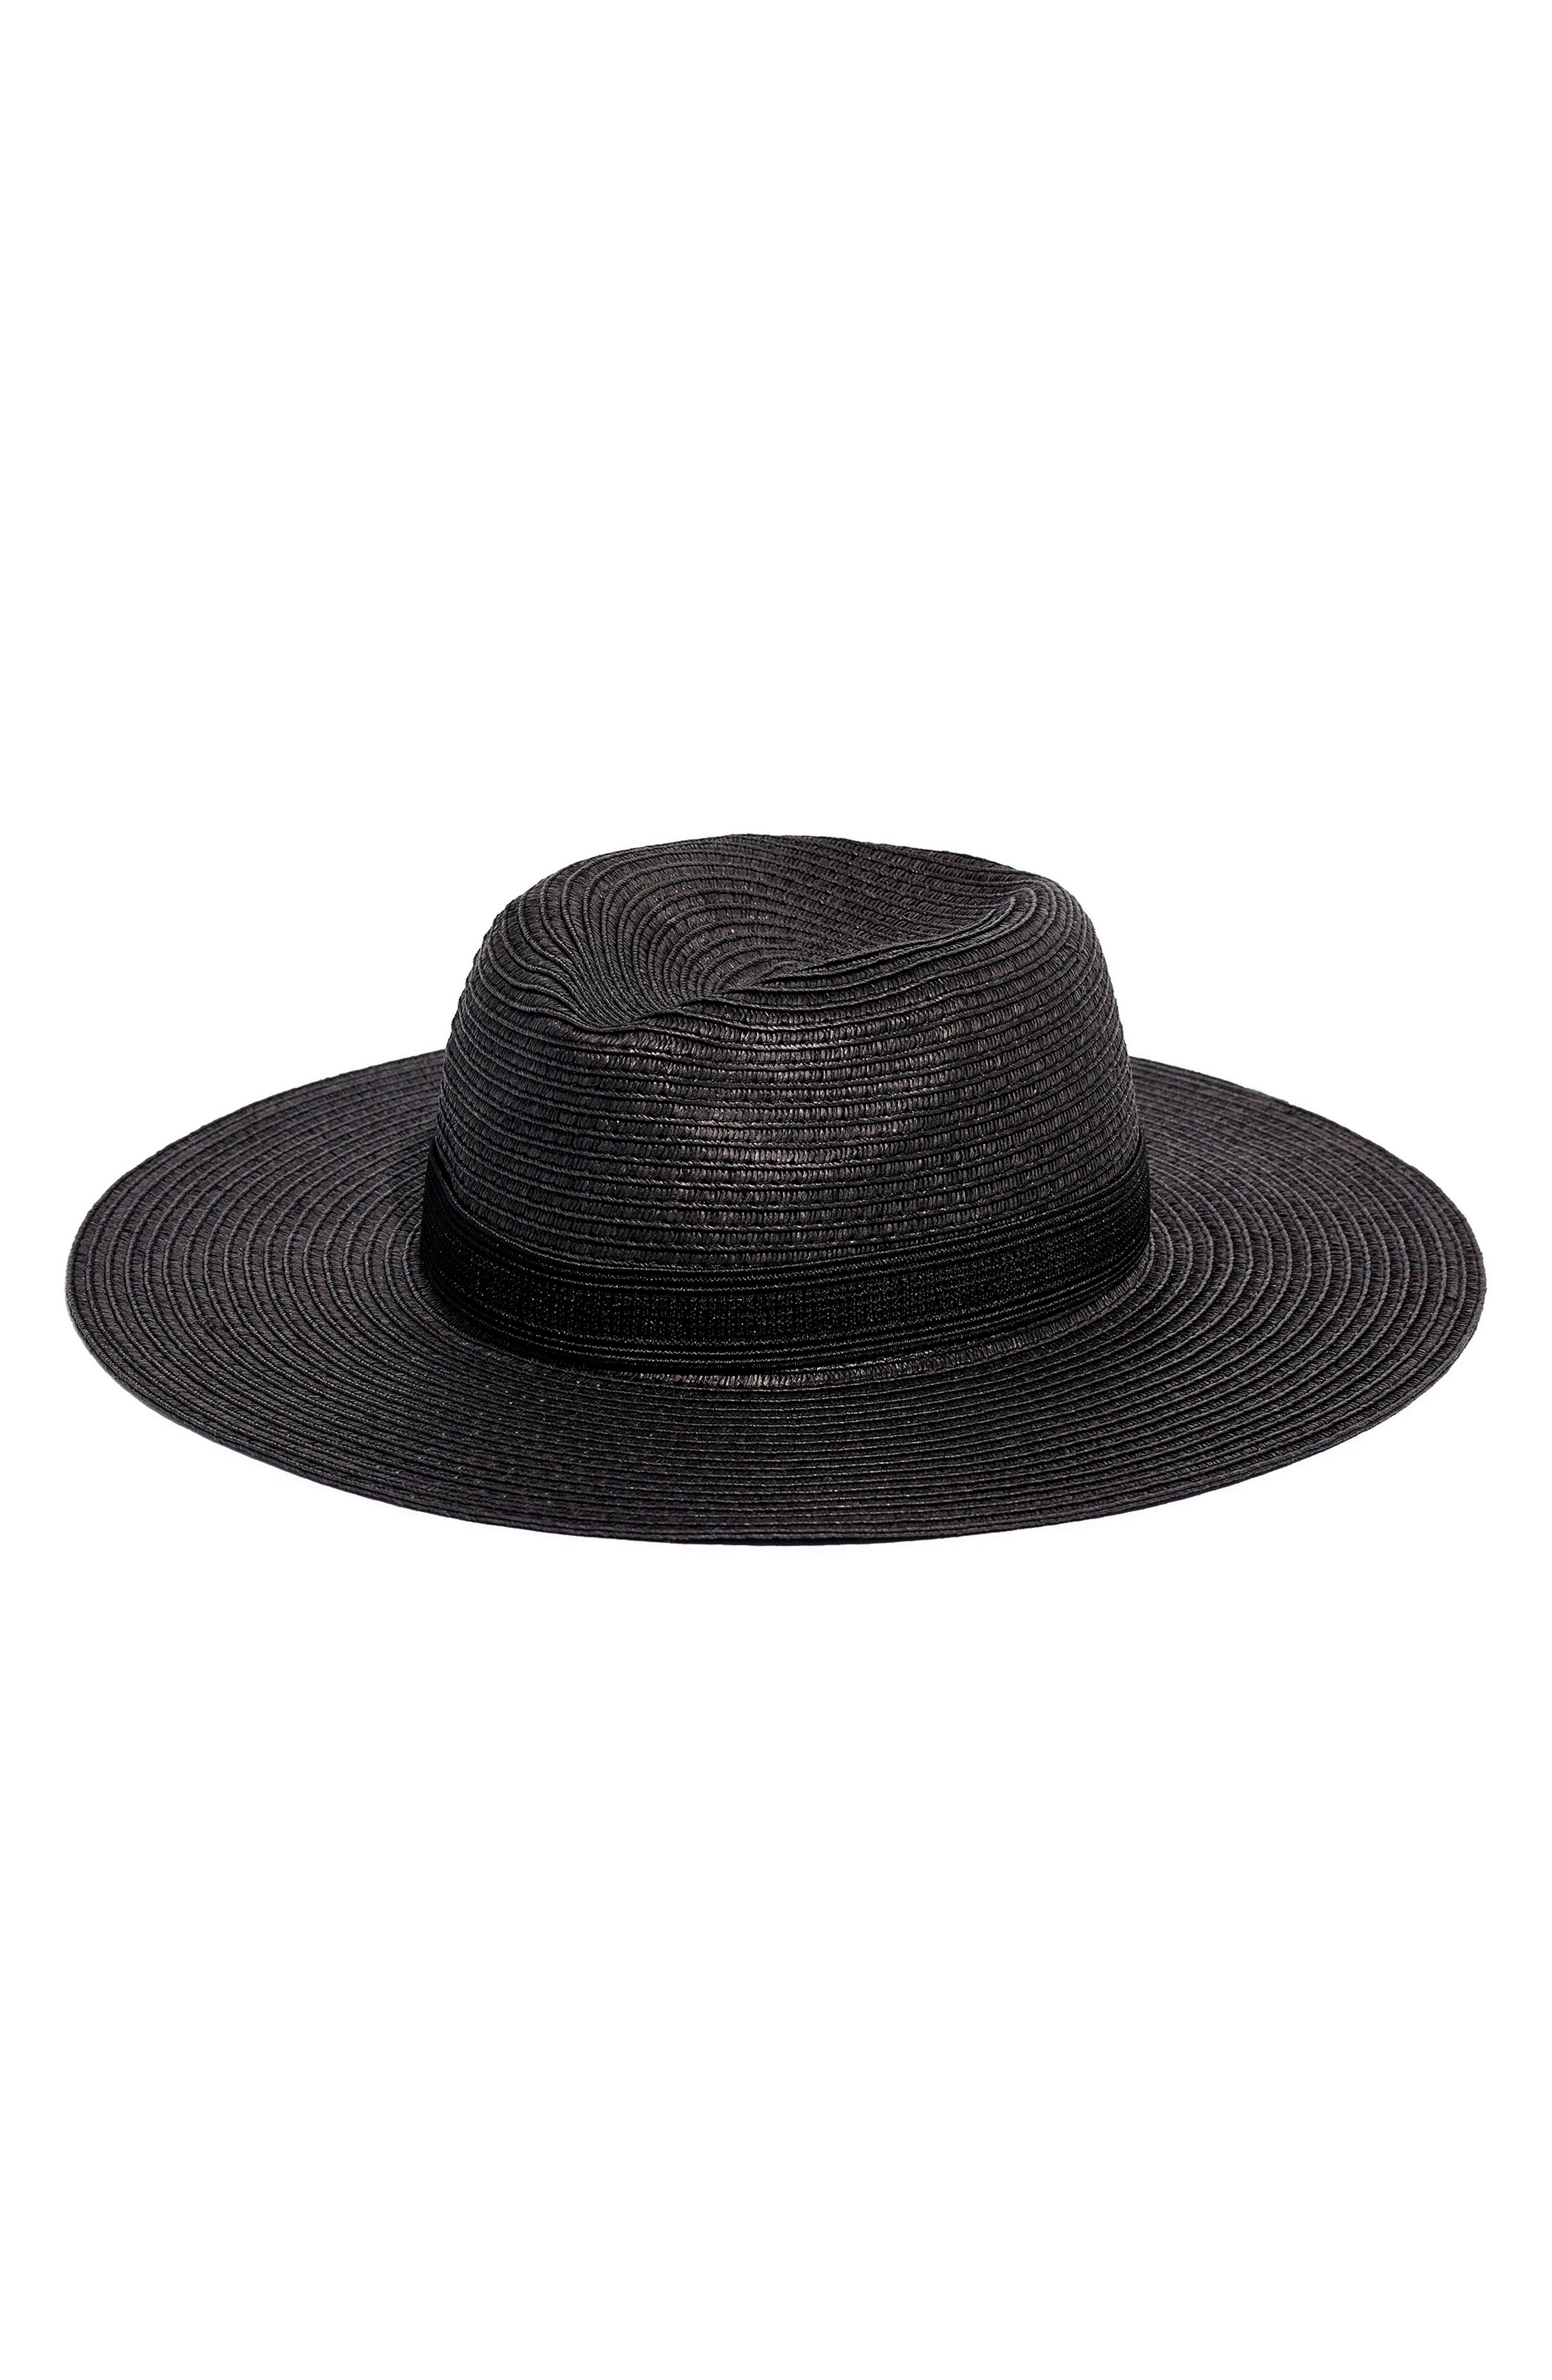 MADEWELL, Mesa Packable Straw Hat, Main thumbnail 1, color, TRUE BLACK STRAW